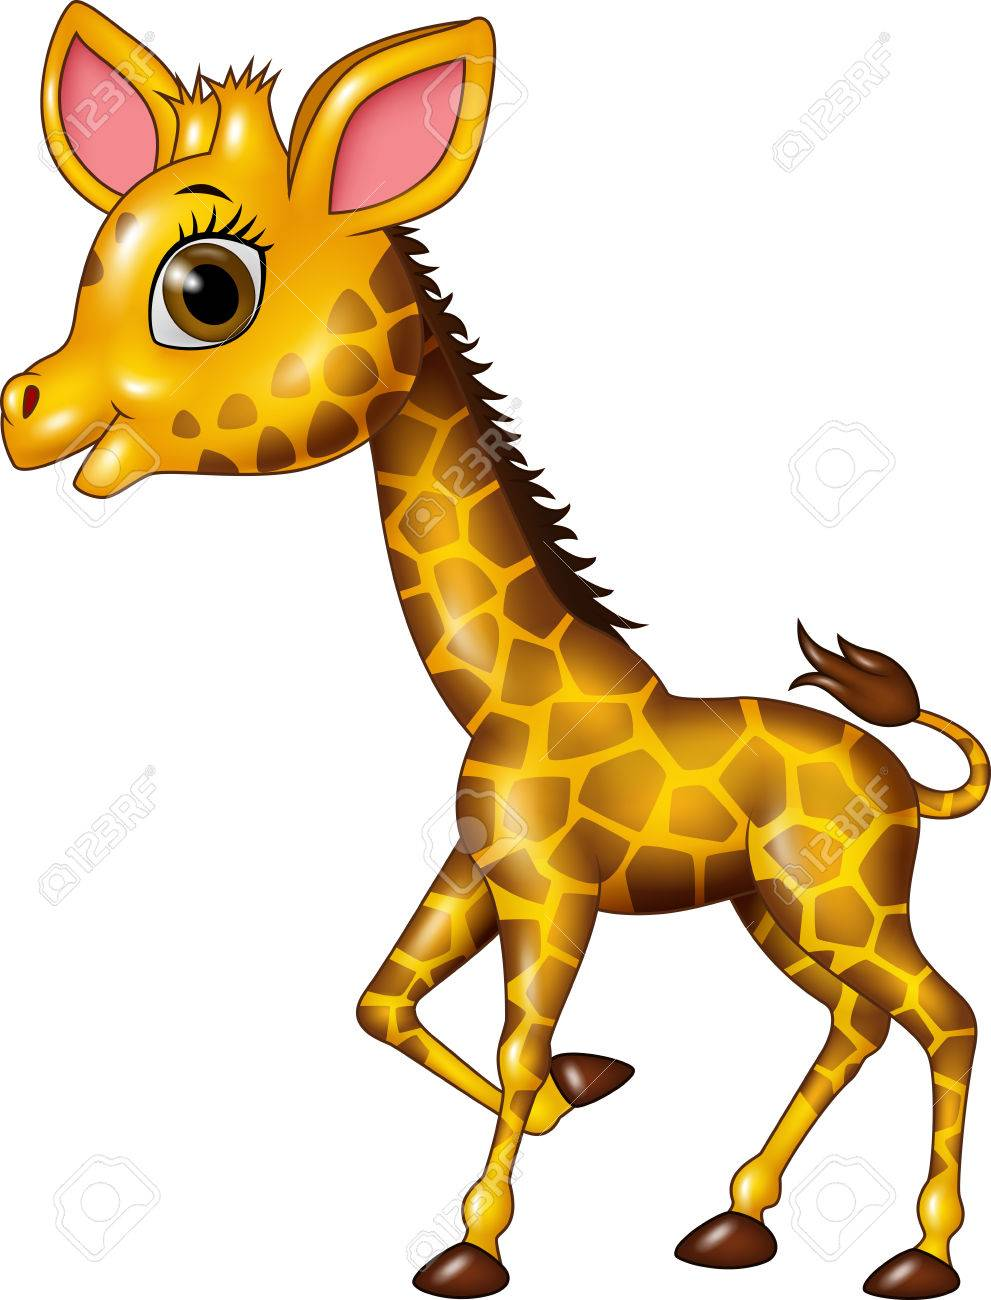 Vector illustration of Cartoon funny baby giraffe isolated on white background - 53334627